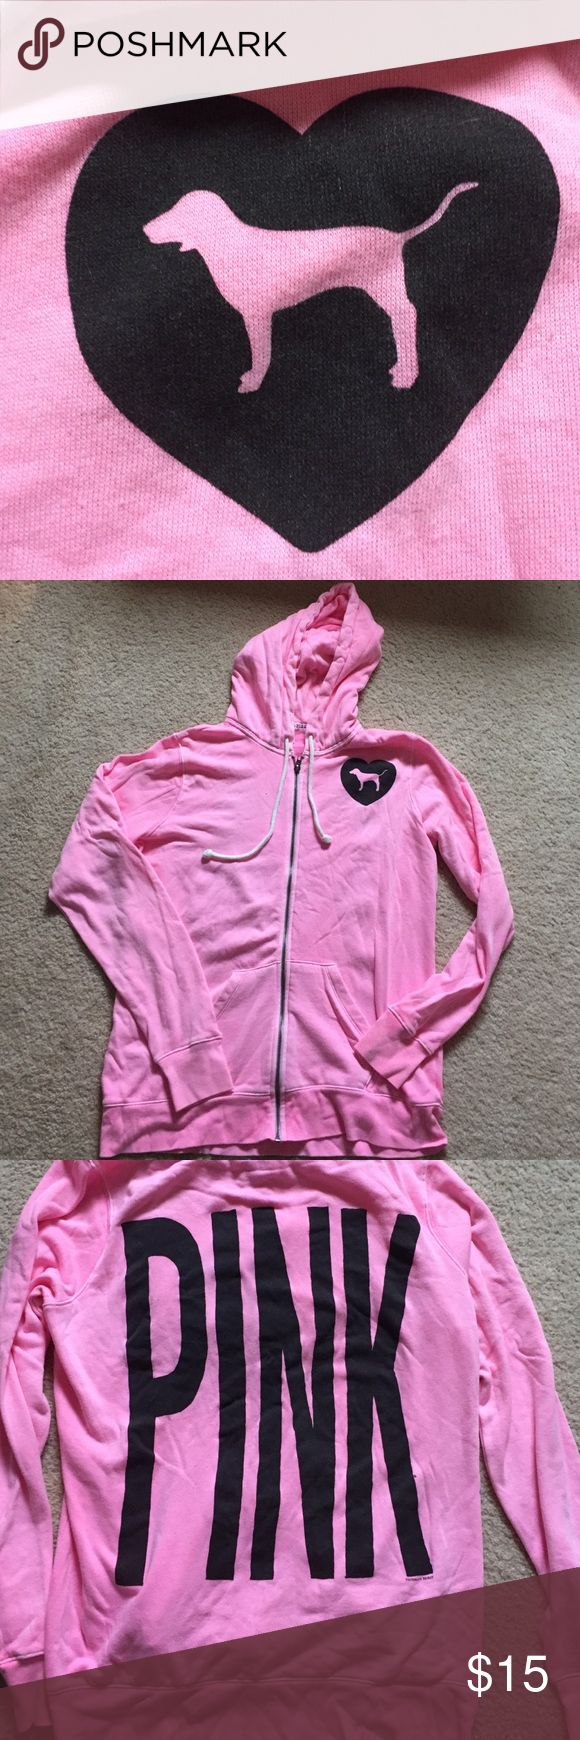 Victoria's Secret Pink zip up hoodie Neon pink, has a distressed/washed out look. Full zip. Pre loved, but in great condition. PINK Victoria's Secret Tops Sweatshirts & Hoodies